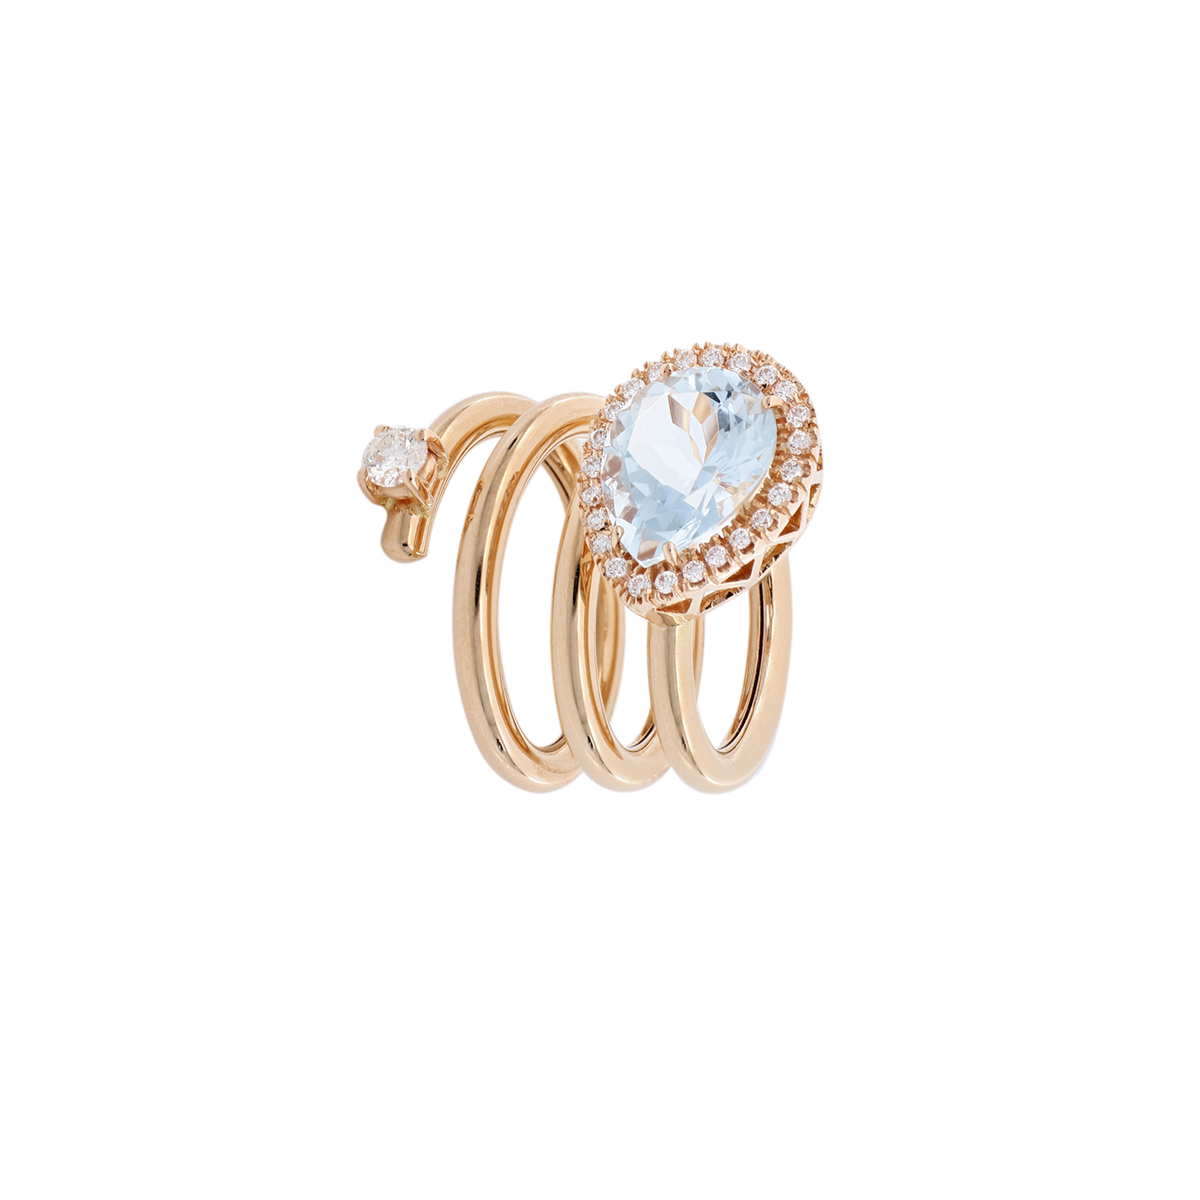 Spiral Ring with Pear-Cut Aquamarine and Diamond Halo